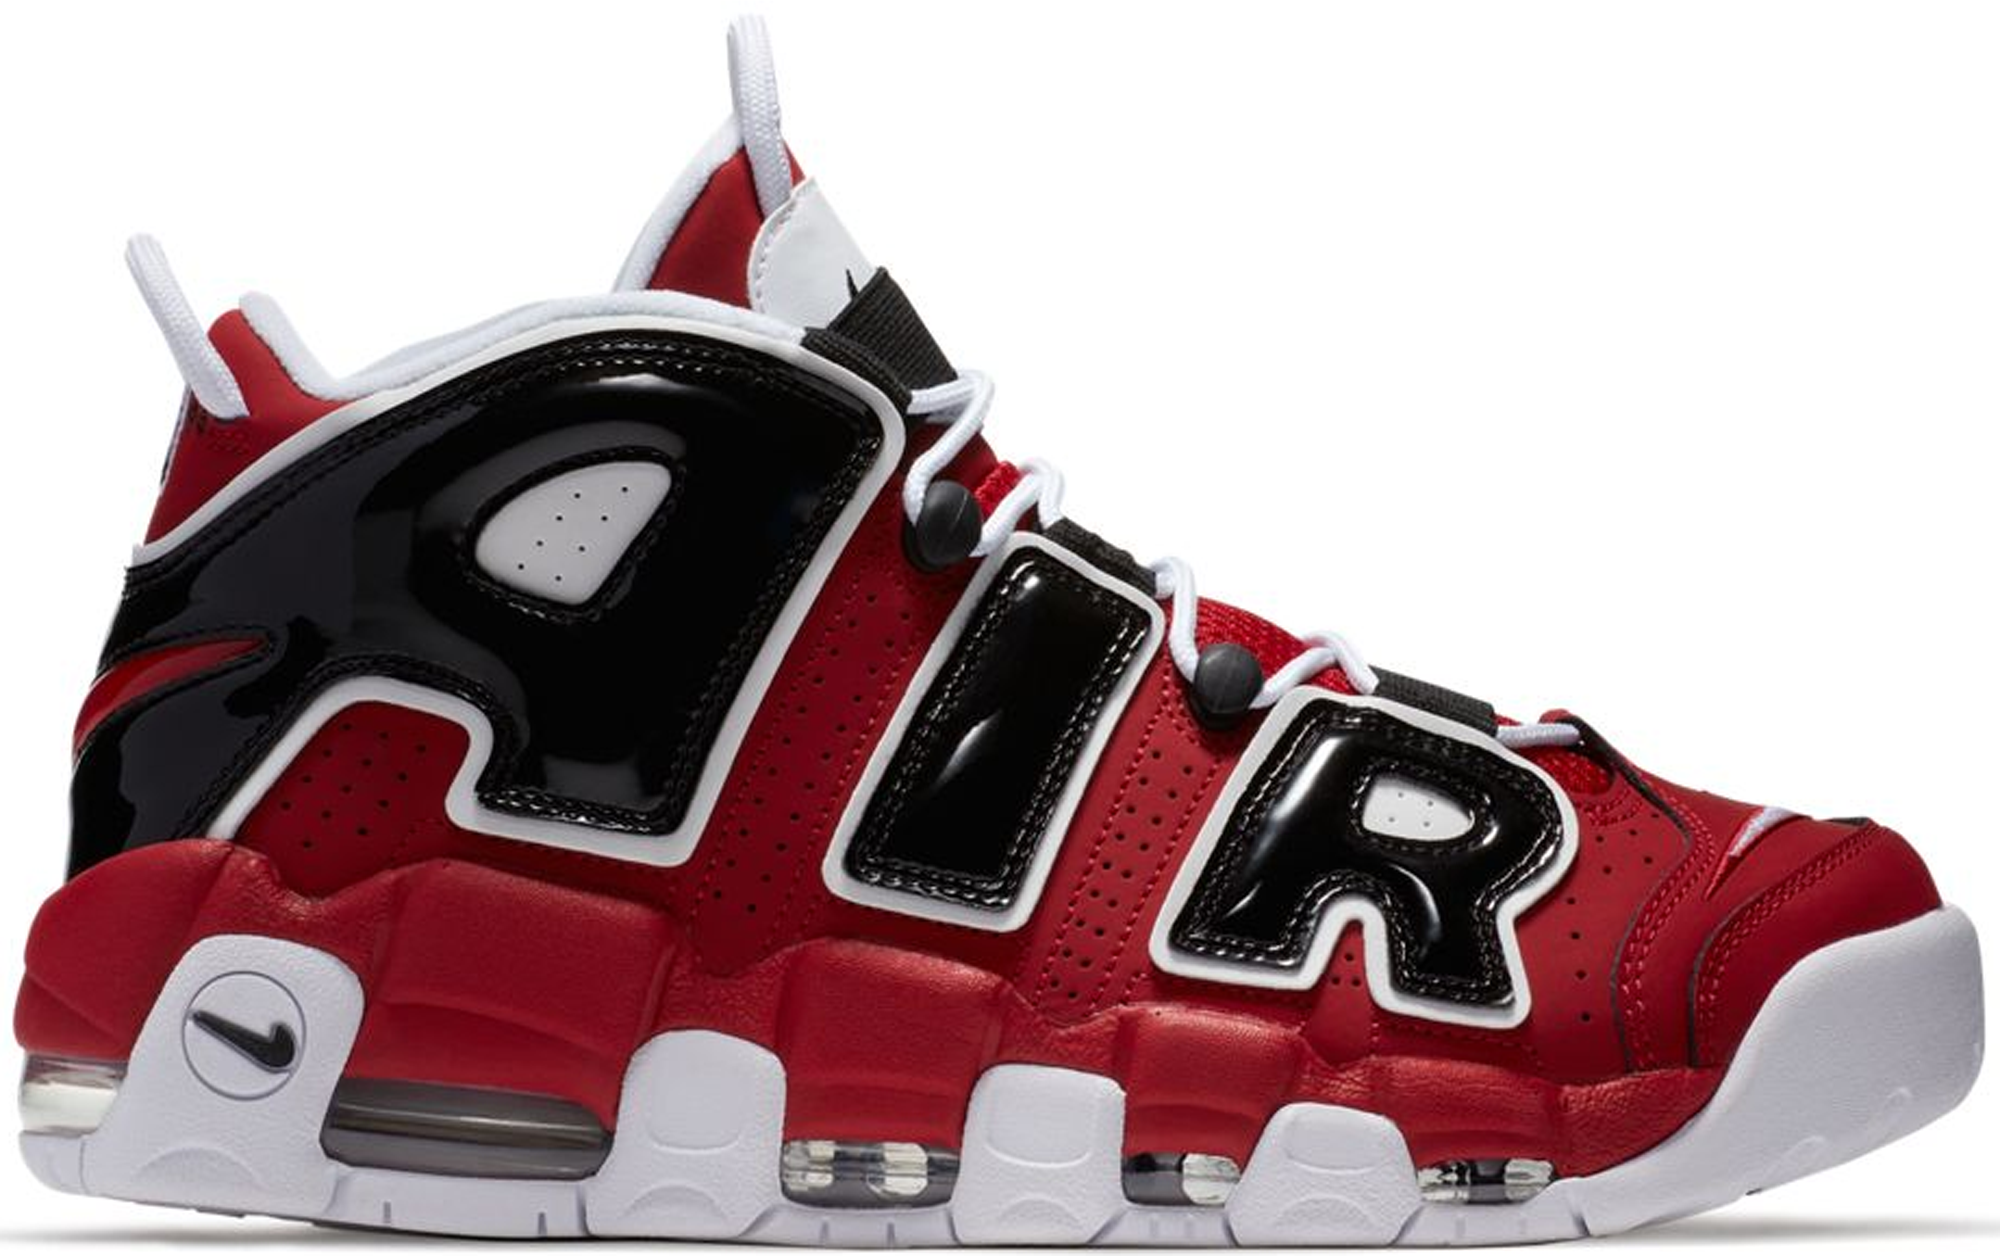 buy online 96fd2 4598a ... nike air more uptempo 07; Authentic Air Max 2016 Mens Shoe Red Black;  Excellent ...